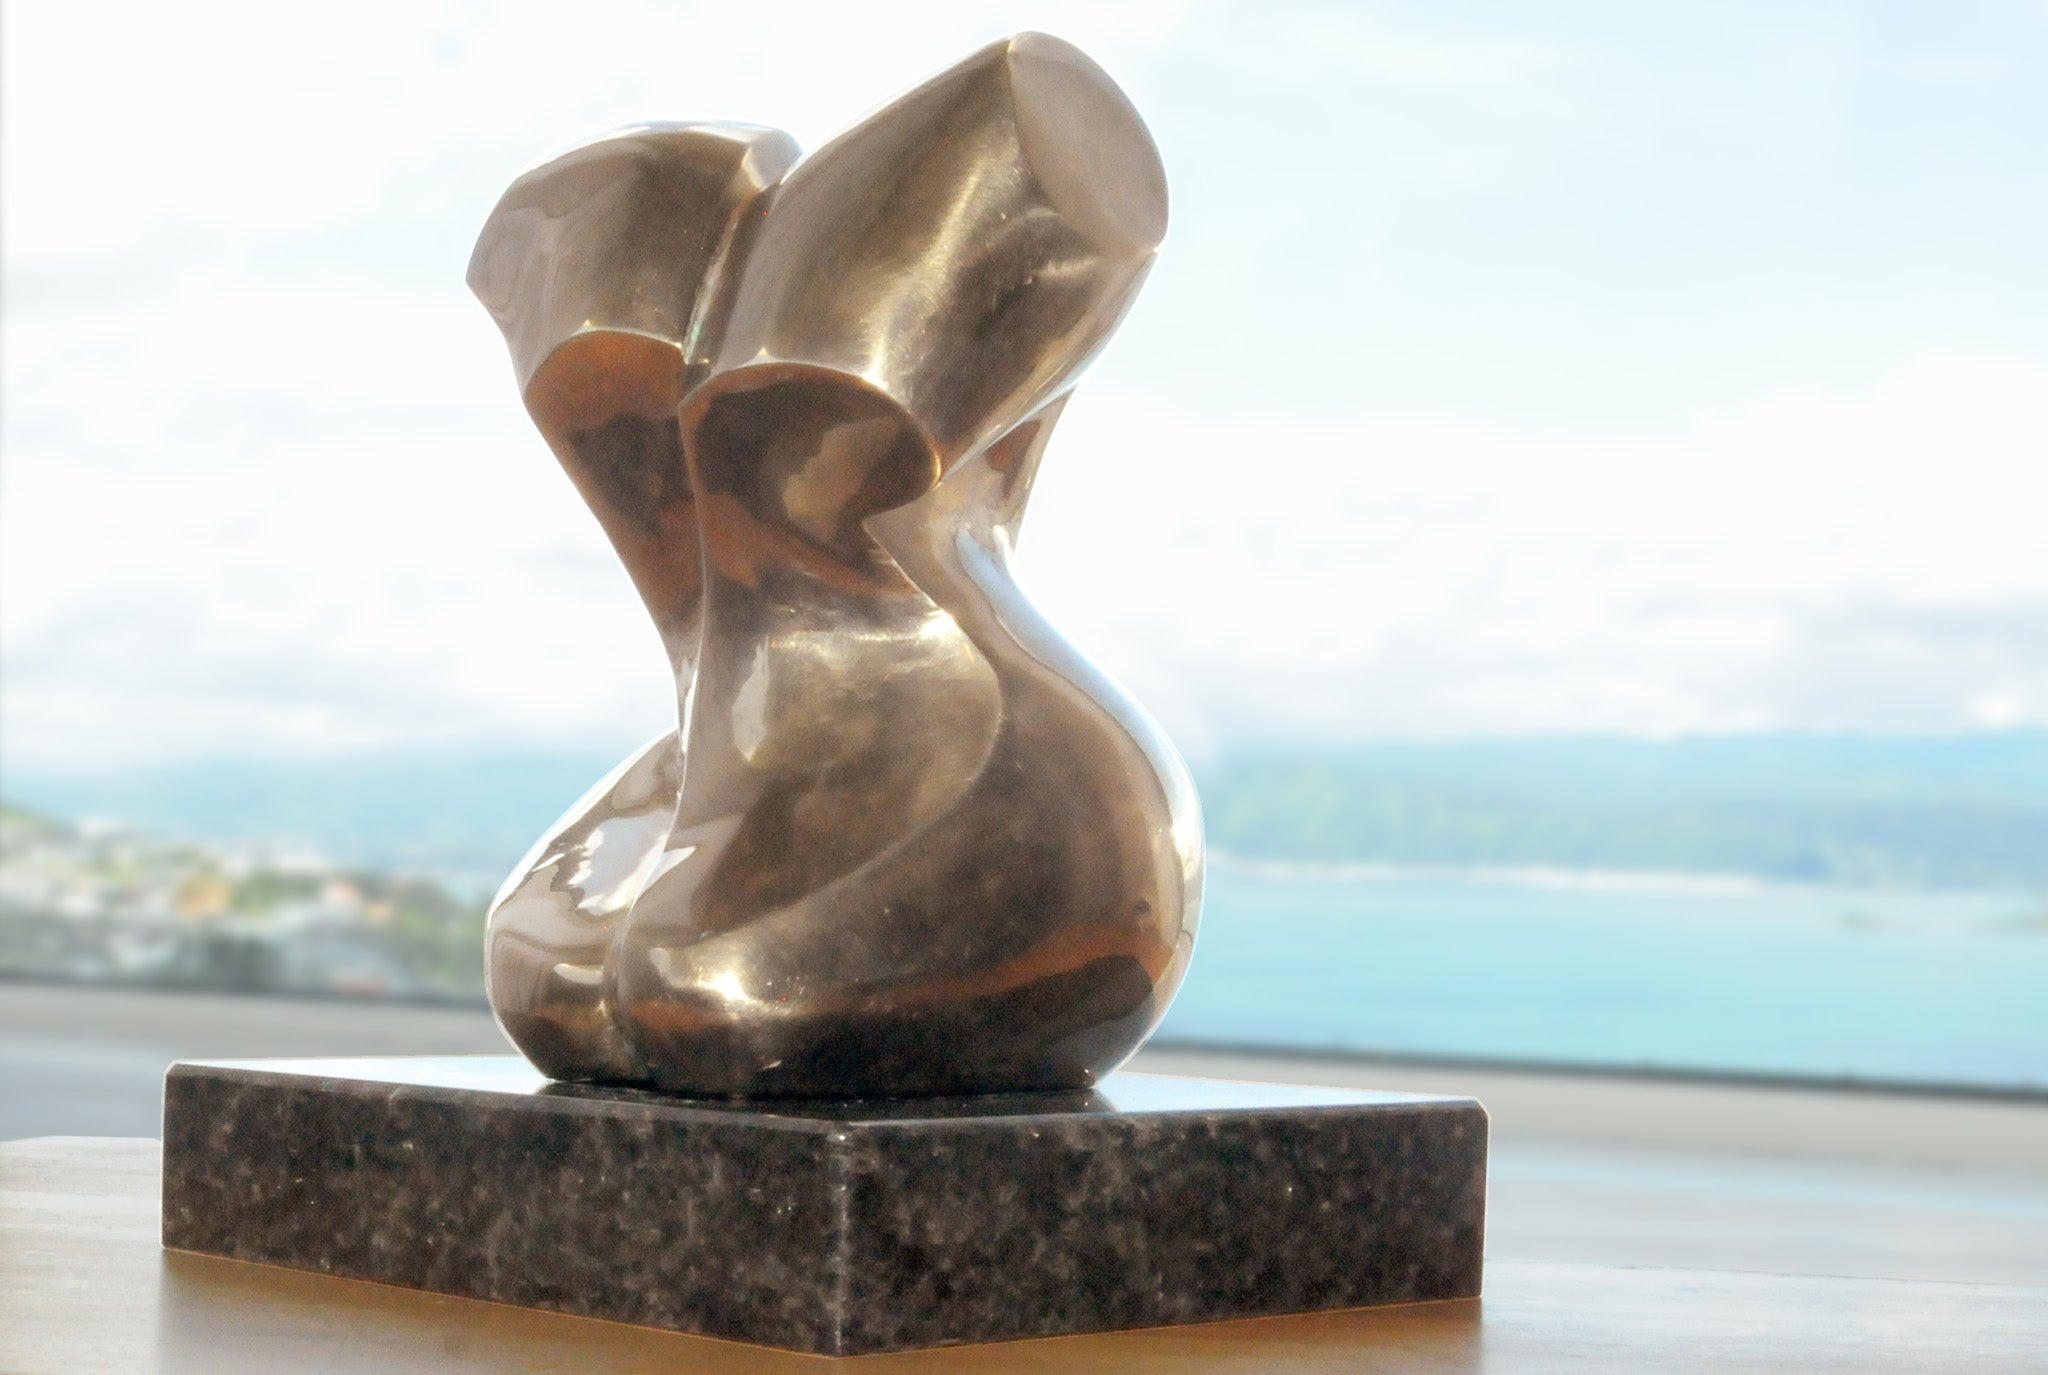 Abstract figurative bronze sculpture by Stephen Williams